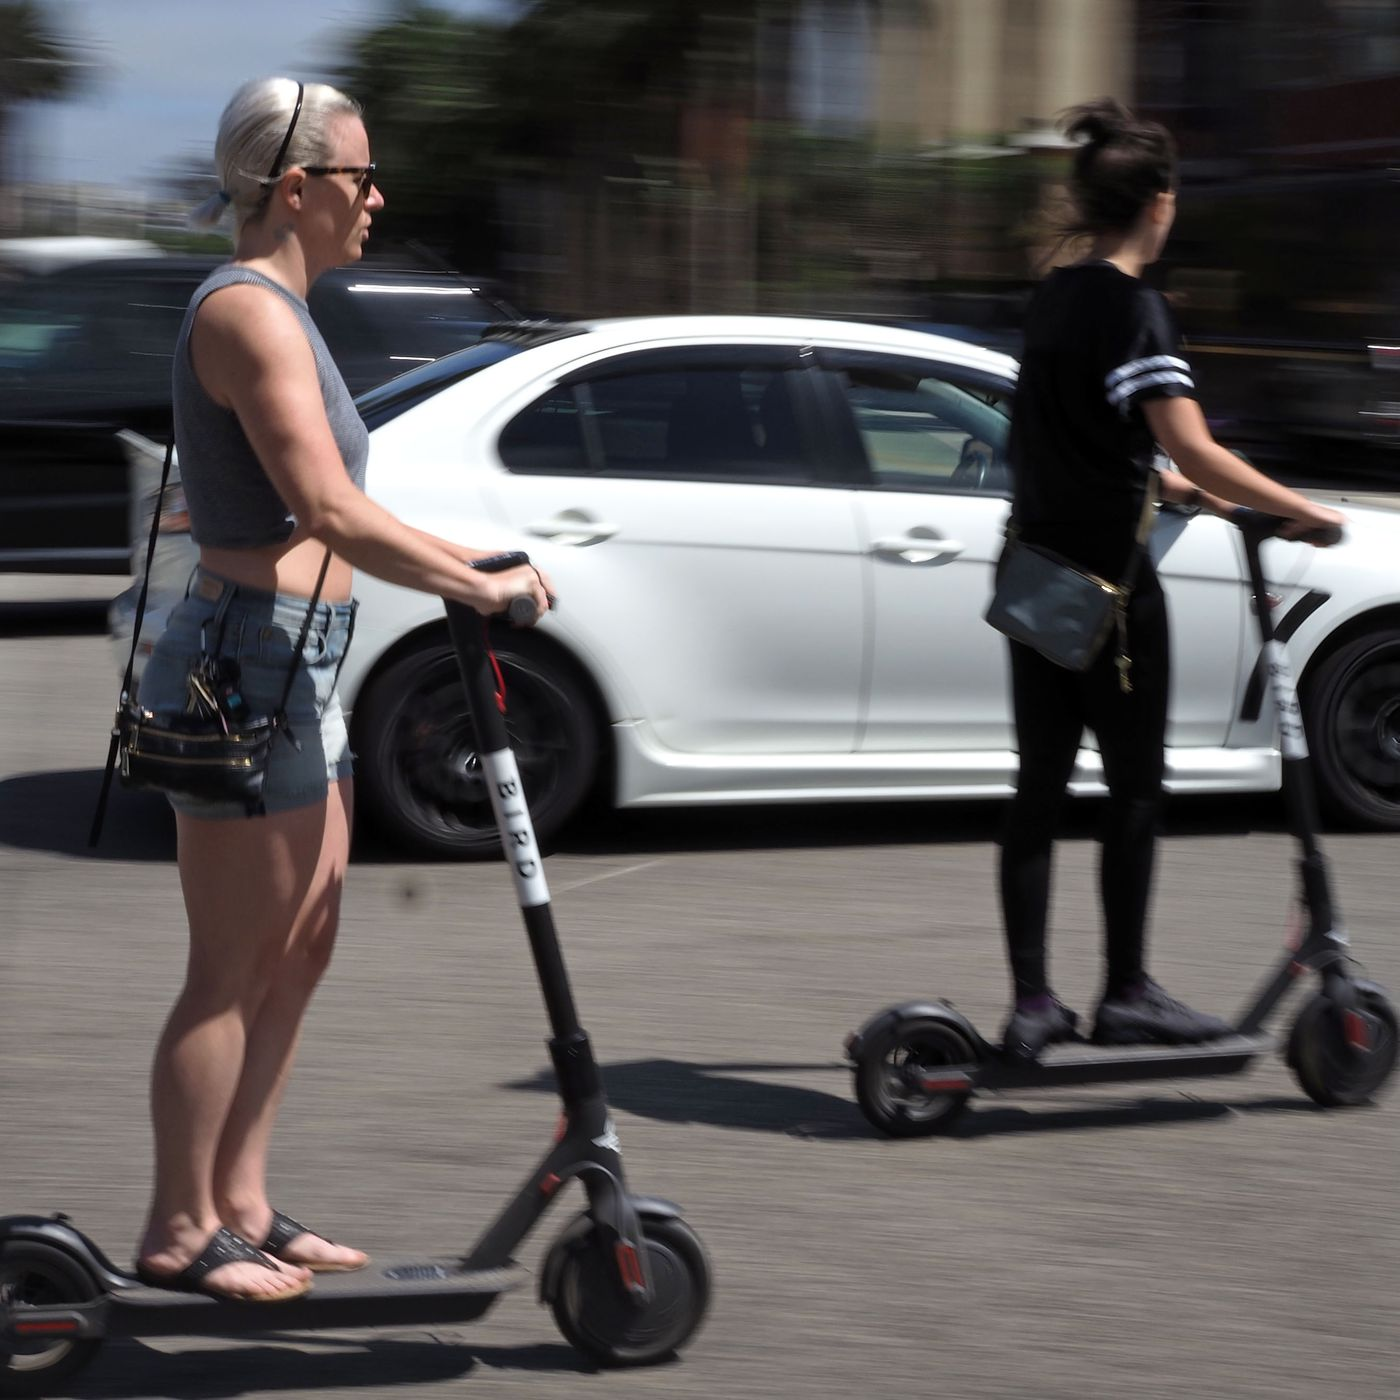 Electric scooters in Chicago: Everything you need to know - Chicago